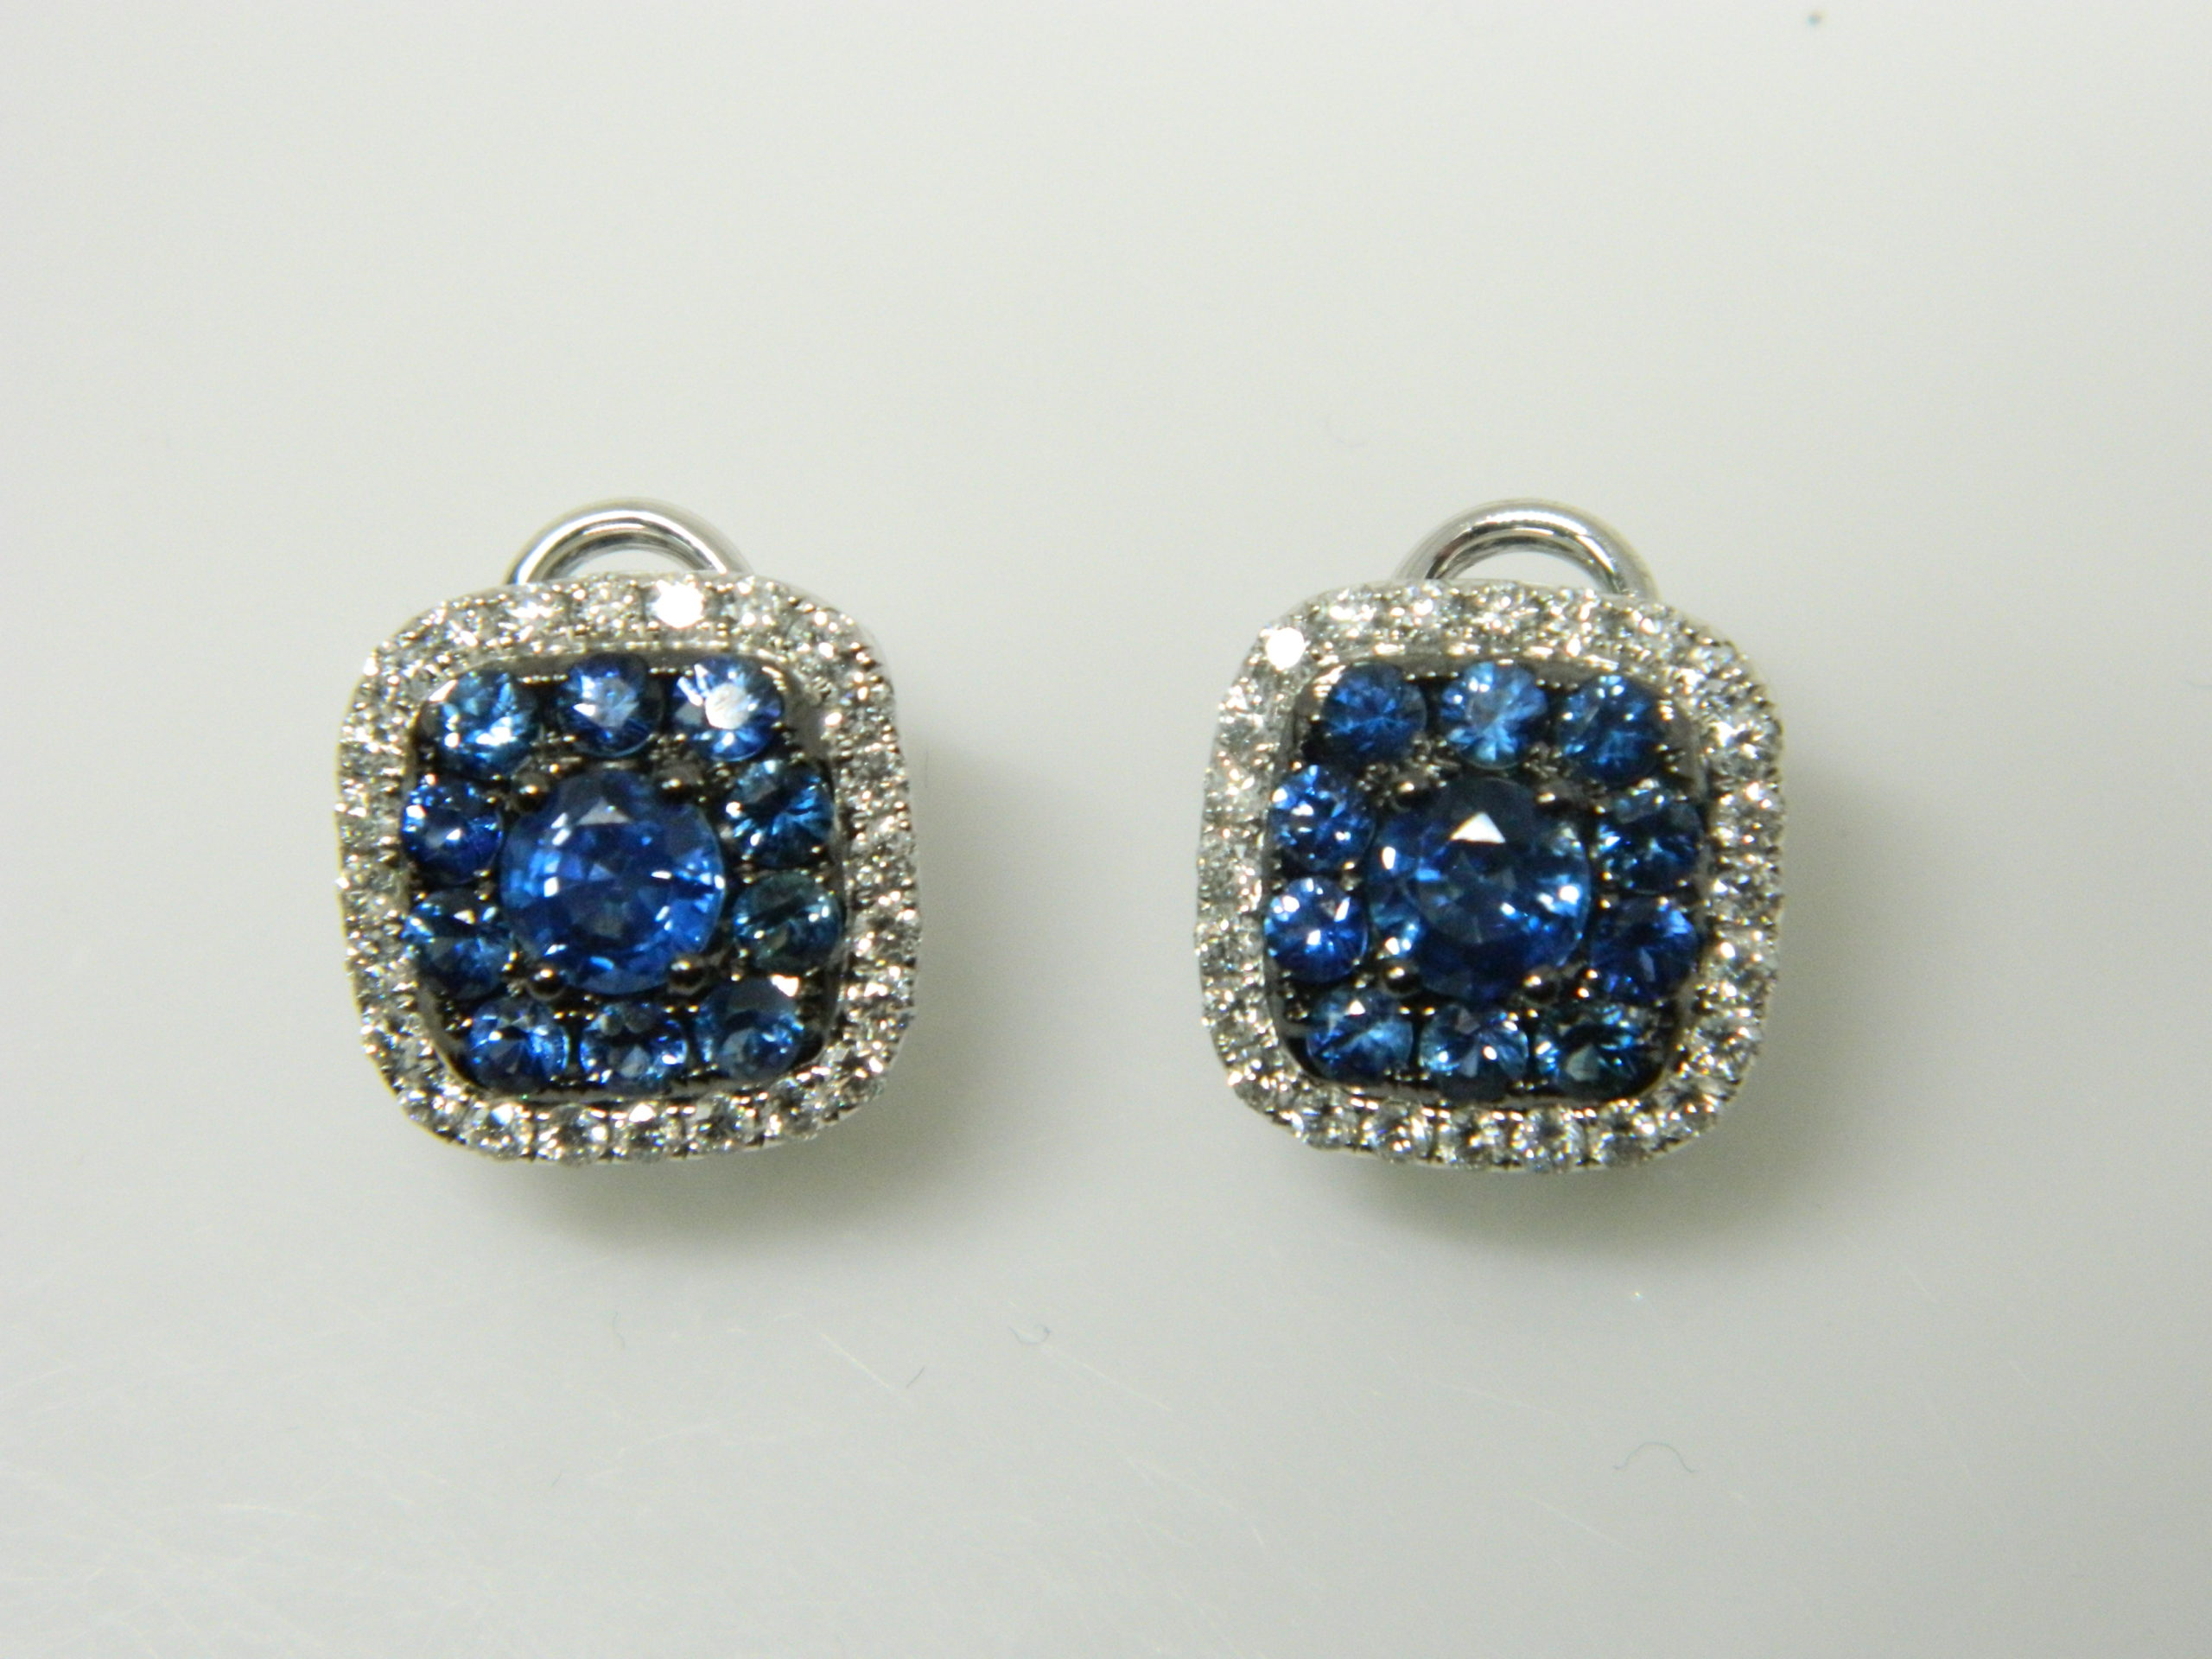 18 Karat White Gold Button Mounted Earrings with 2 Blue Sapphires weighing 1.27cts, 20 Blue Sapphires weighing 1.44cts, 48 Round Cut Diamonds weighing 0.84cts